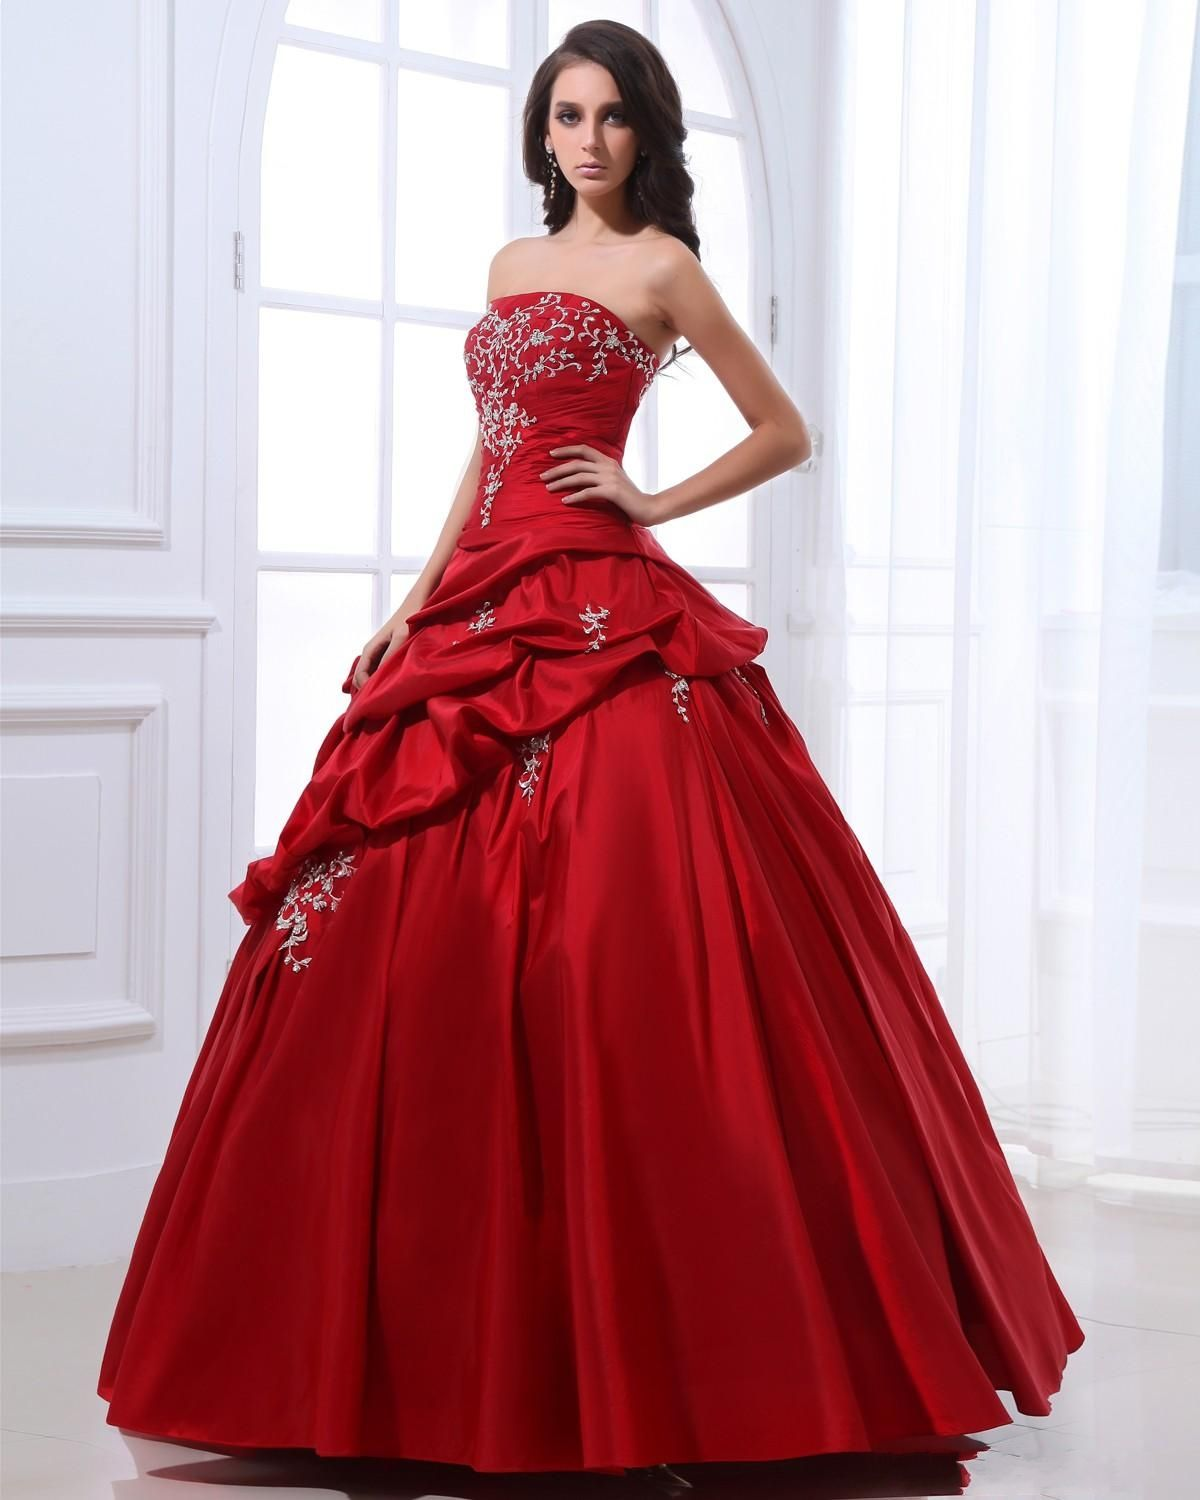 Red Ball Gown Dresses: ... Ball Gown Red Princess Prom Gowns